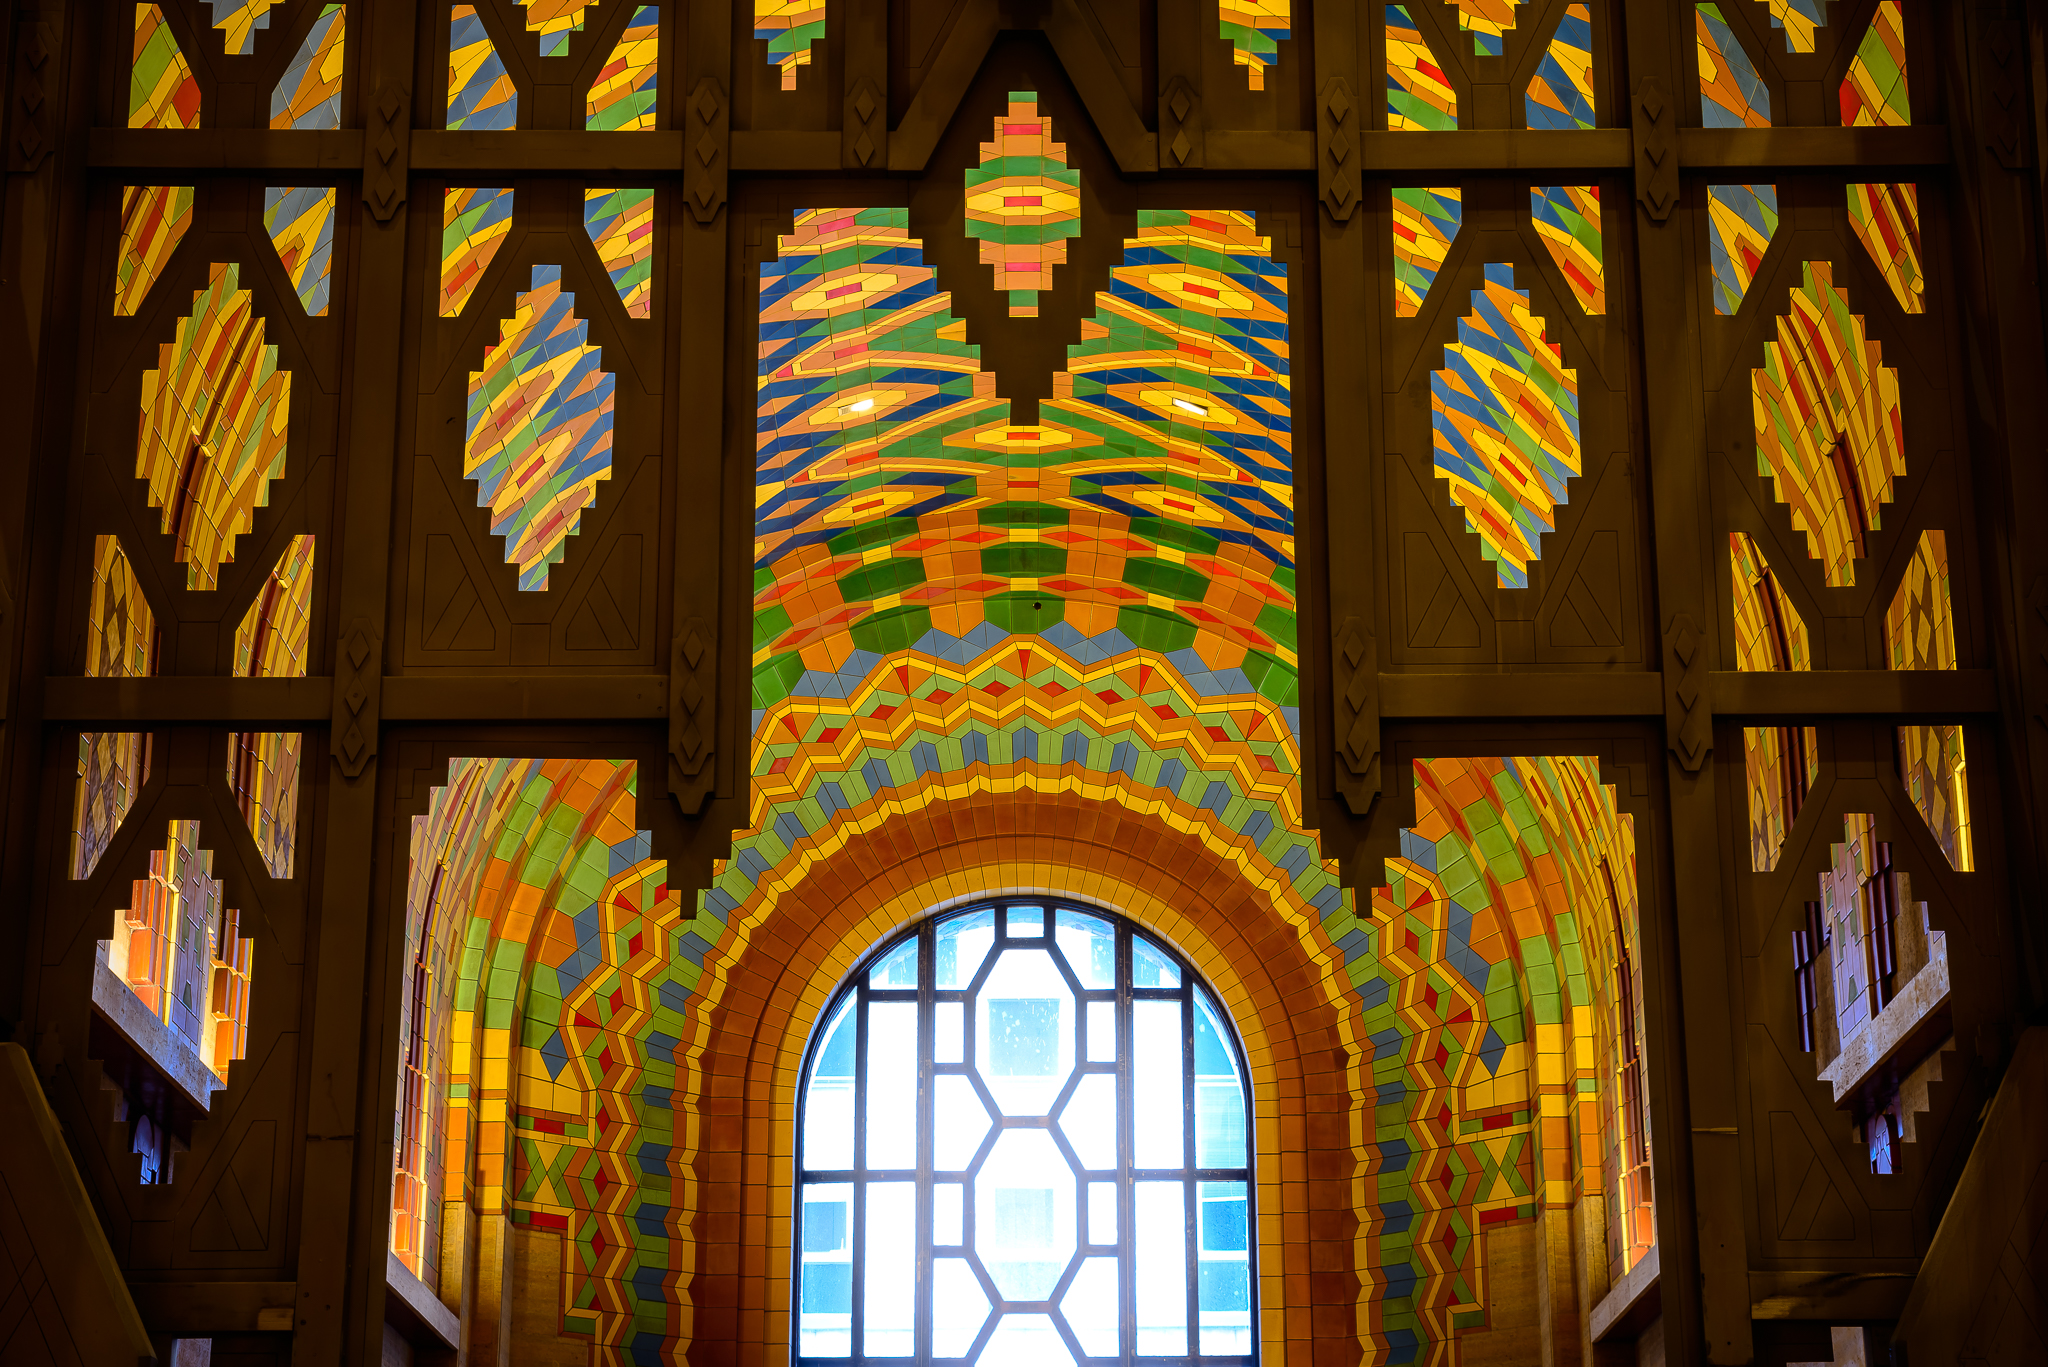 detroit_guardian_building_interior_lobby.jpg